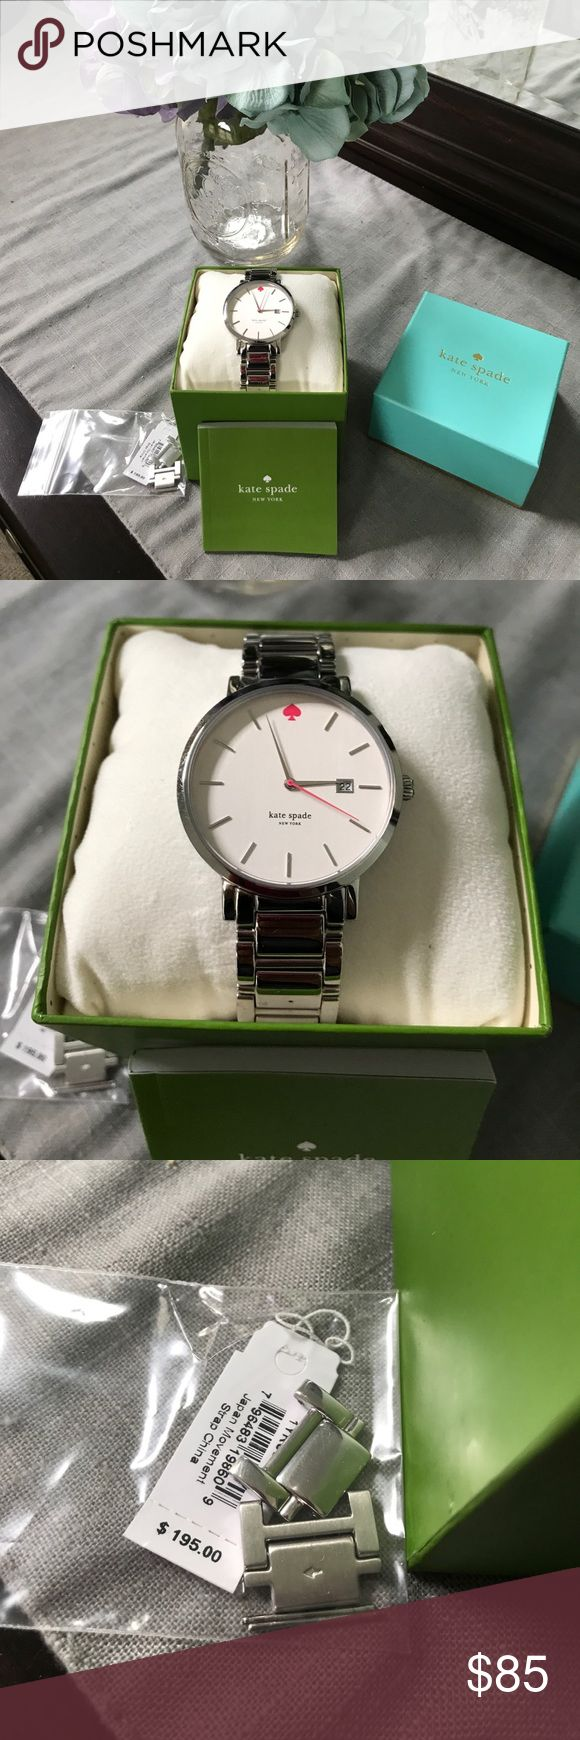 Kate Spade Oversized Watch Like New This watch was worn once or twice. It is in excellent condition. Comes with everything pictured. kate spade Accessories Watches